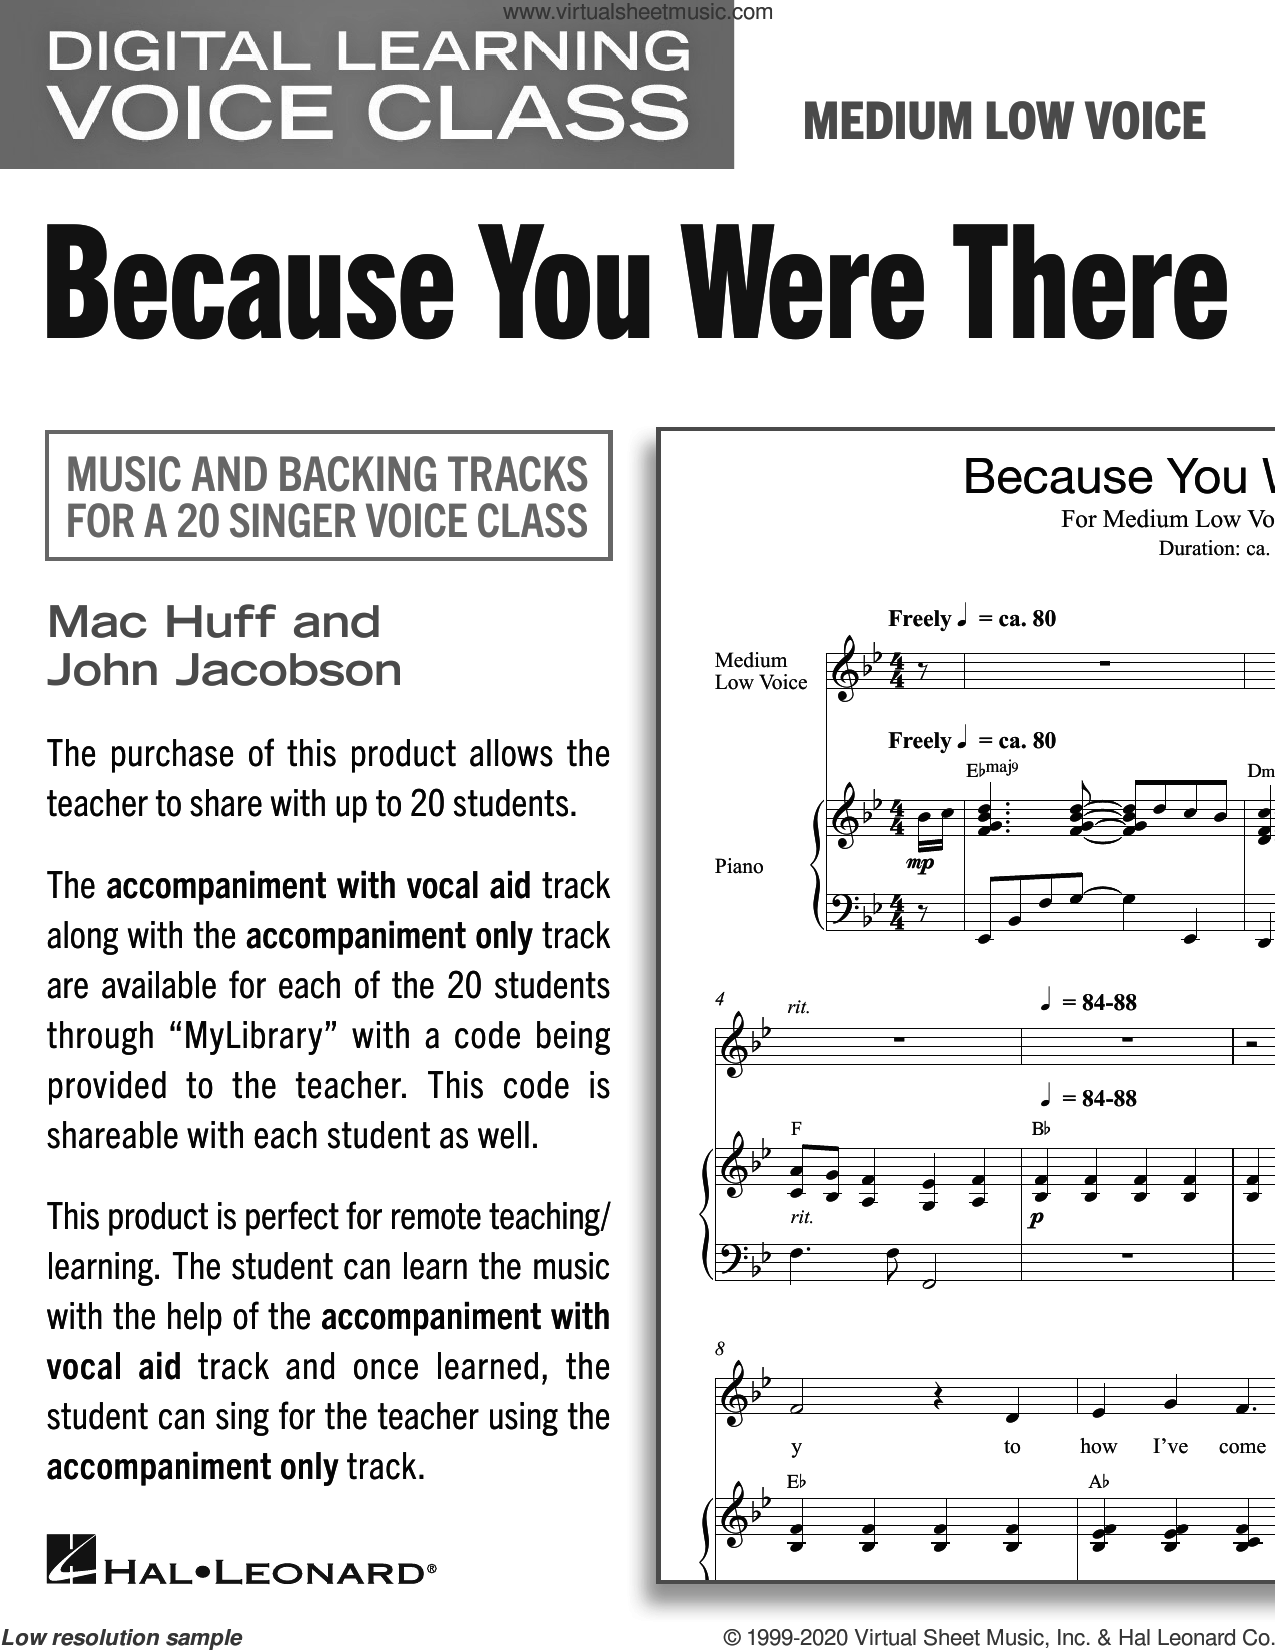 Because You Were There (Medium Low Voice) (includes Audio) sheet music for voice and piano (Medium Low Voice) by Mac Huff and John Jacobson, John Jacobson and Mac Huff, intermediate skill level